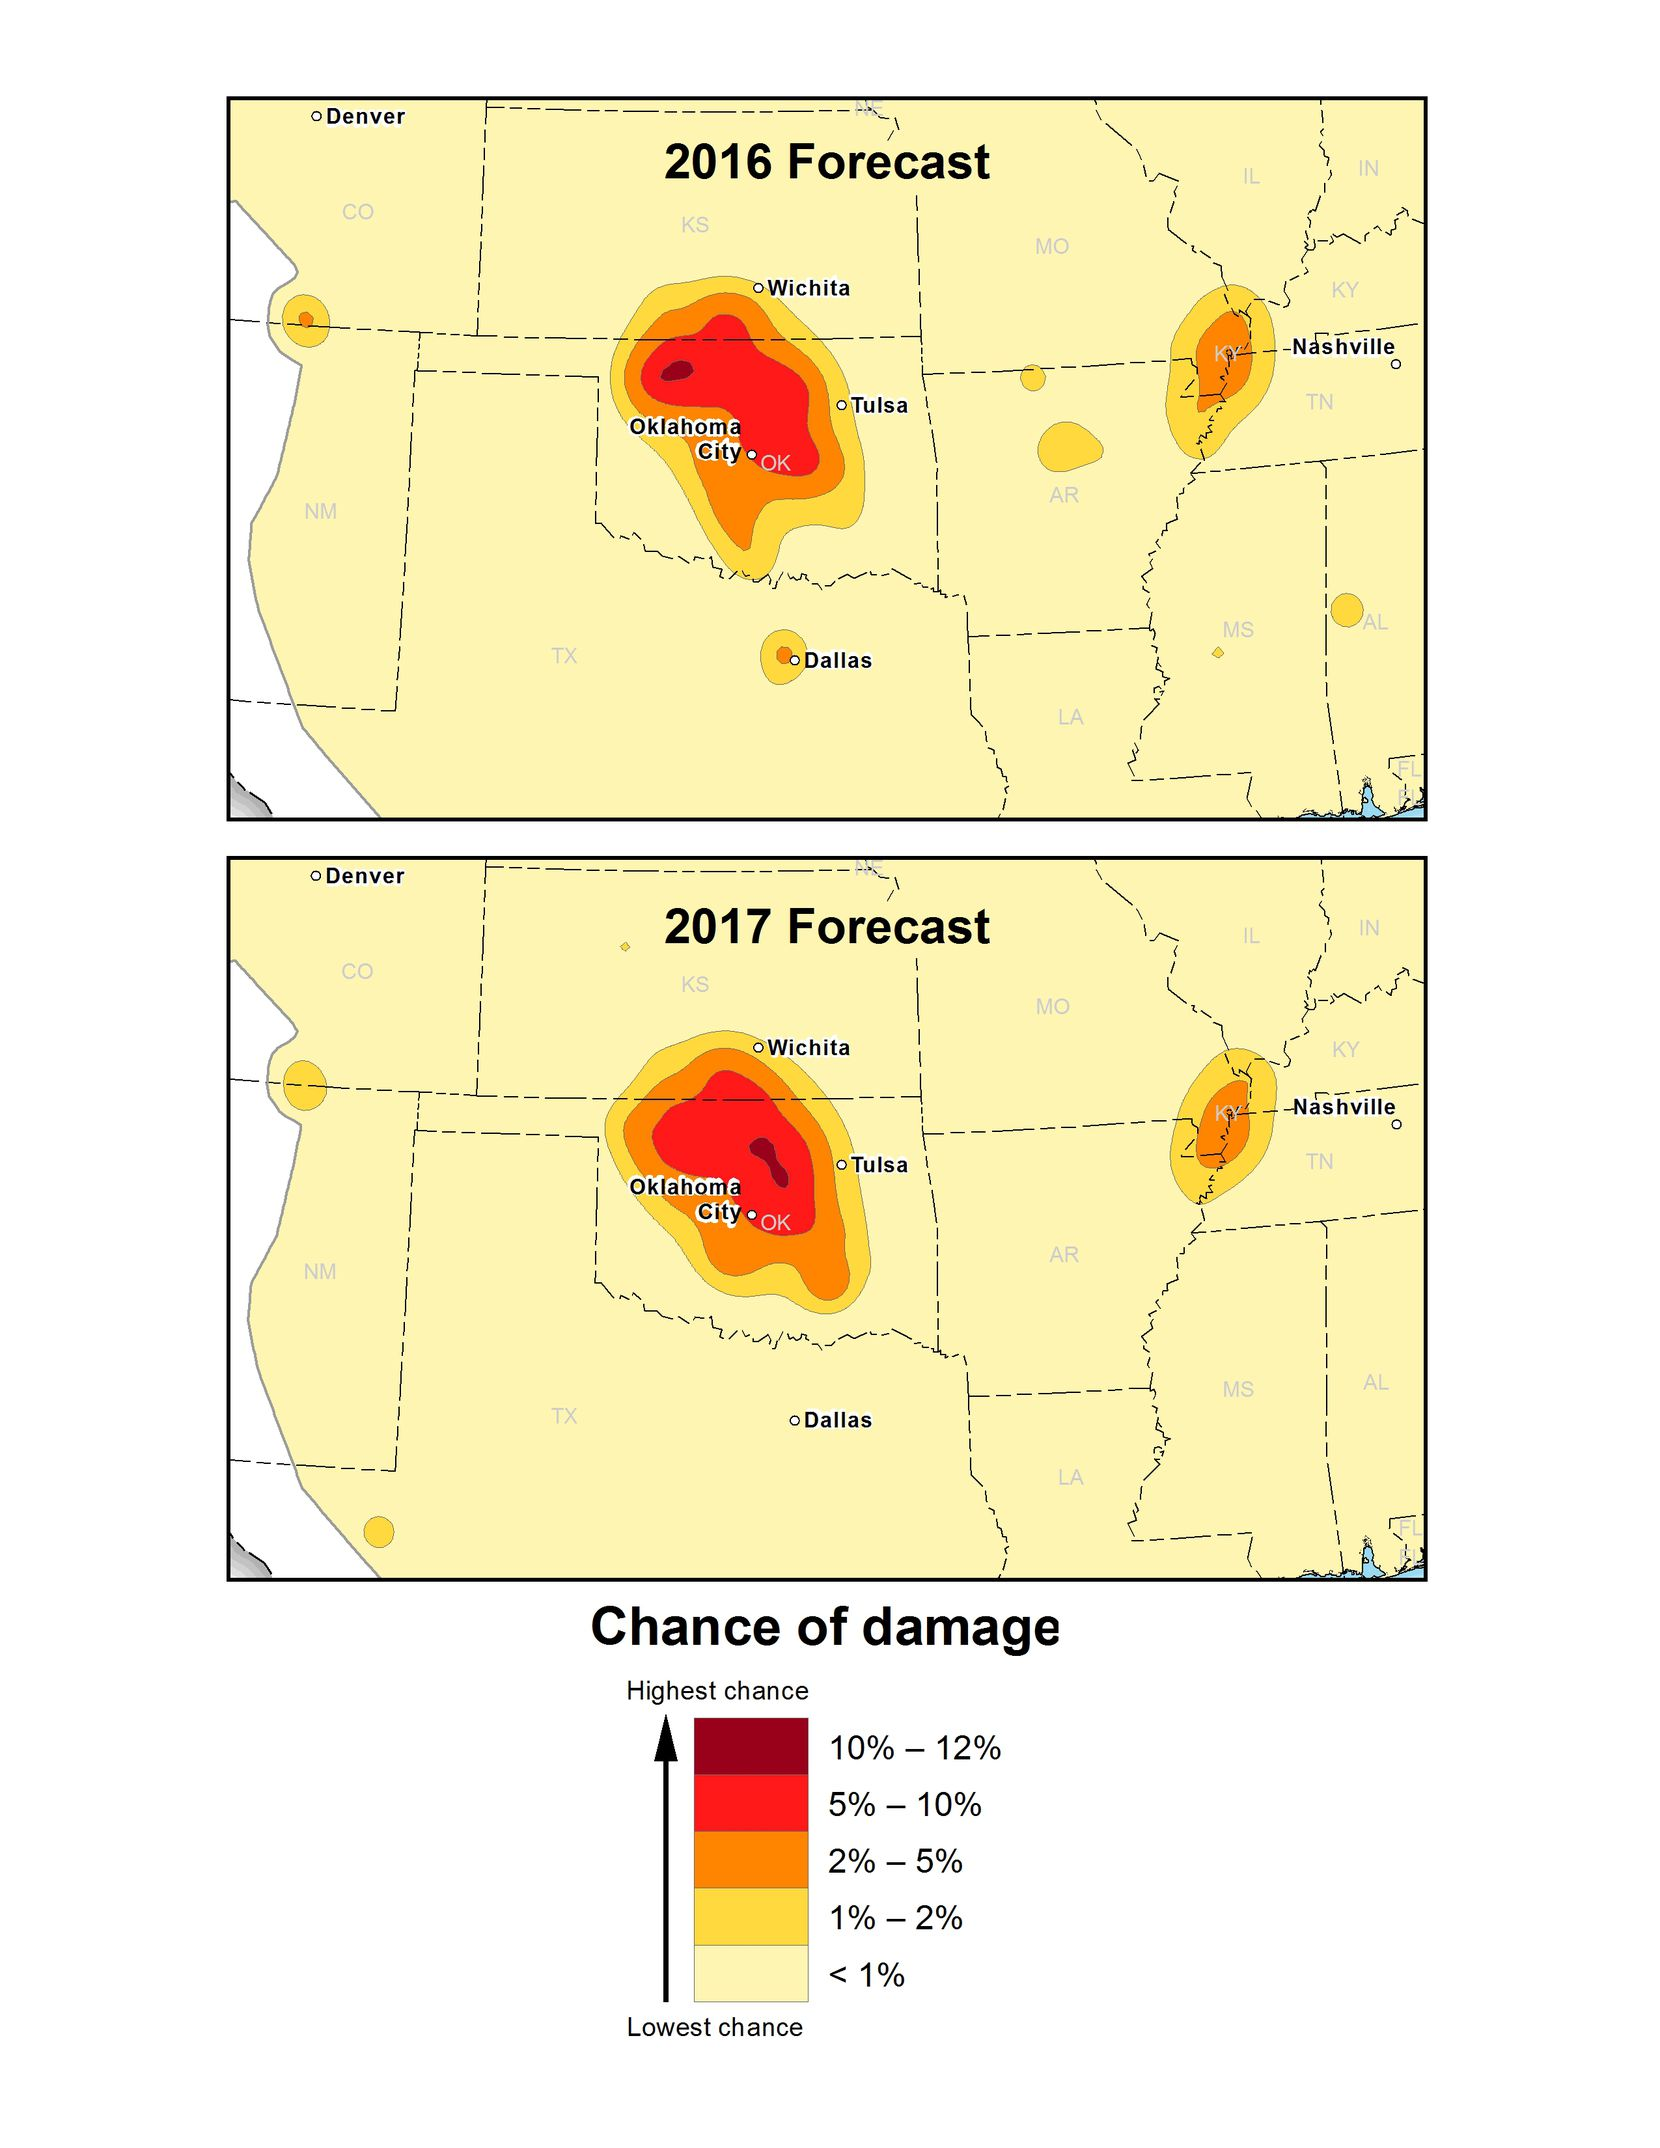 A comparison of USGS one-year hazard forecasts for 2016 and 2017 in the central and eastern U.S. The maps show a steep decline in North Texas and a new small area of hazard in the Permian Basin of West Texas. The USGS reports a high hazard for earthquakes in five areas: Oklahoma-Kansas, the Raton Basin, north Texas, north Arkansas, and the New Madrid Seismic Zone.